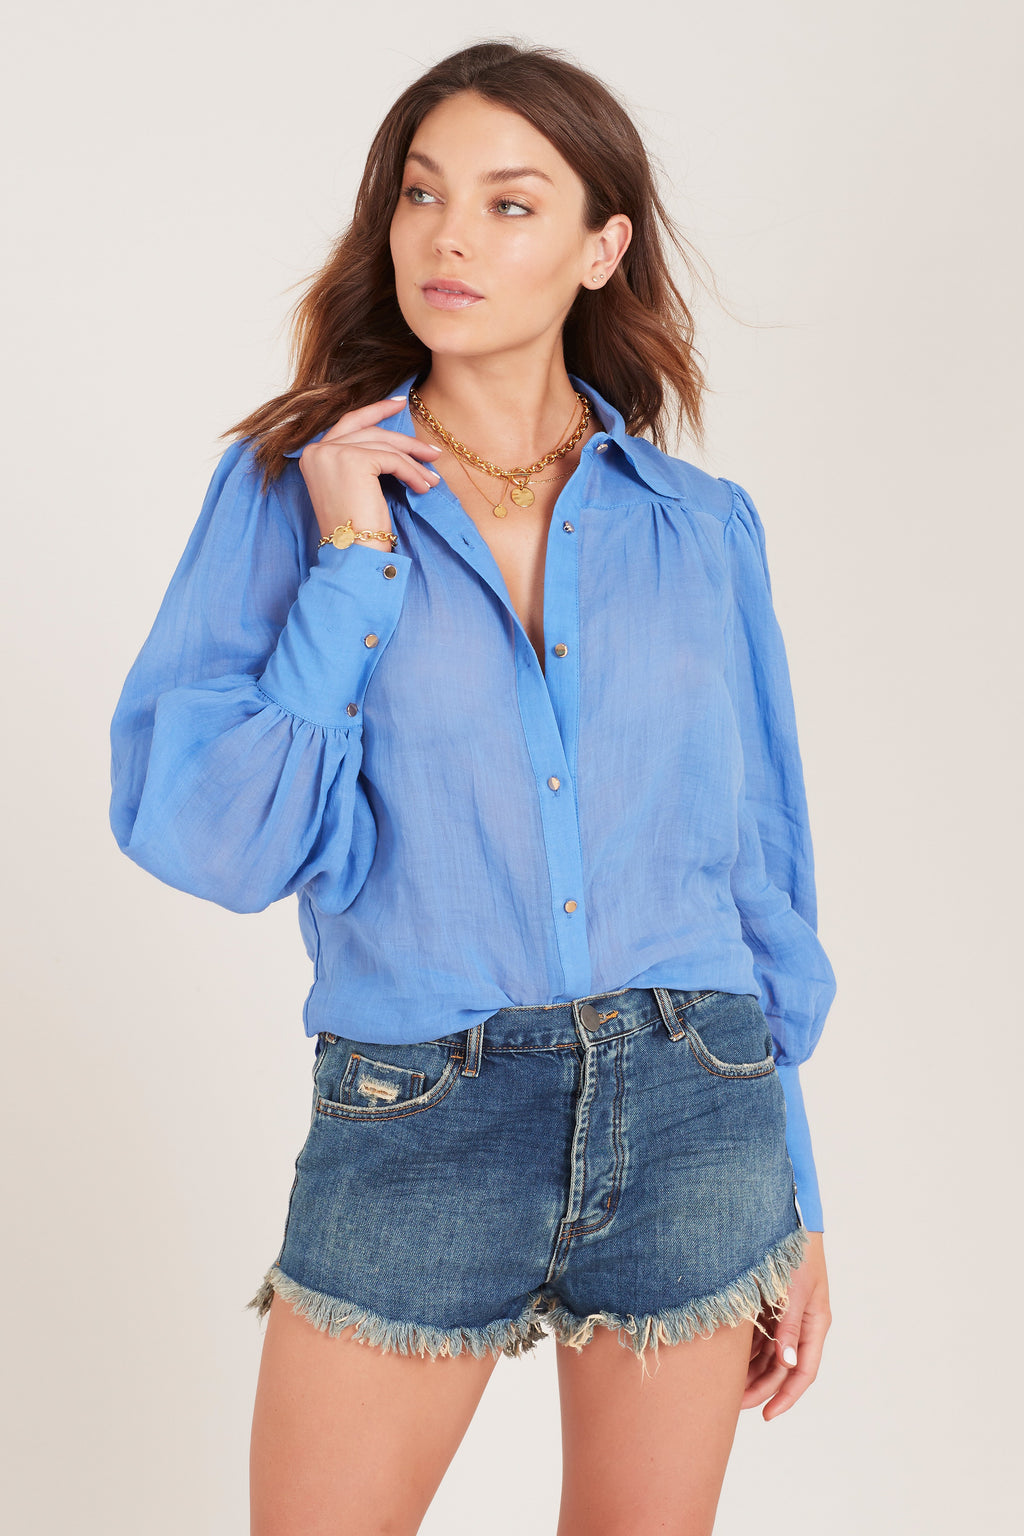 Ministry of Style Symphony Tailored Shirt - blue stone SALE